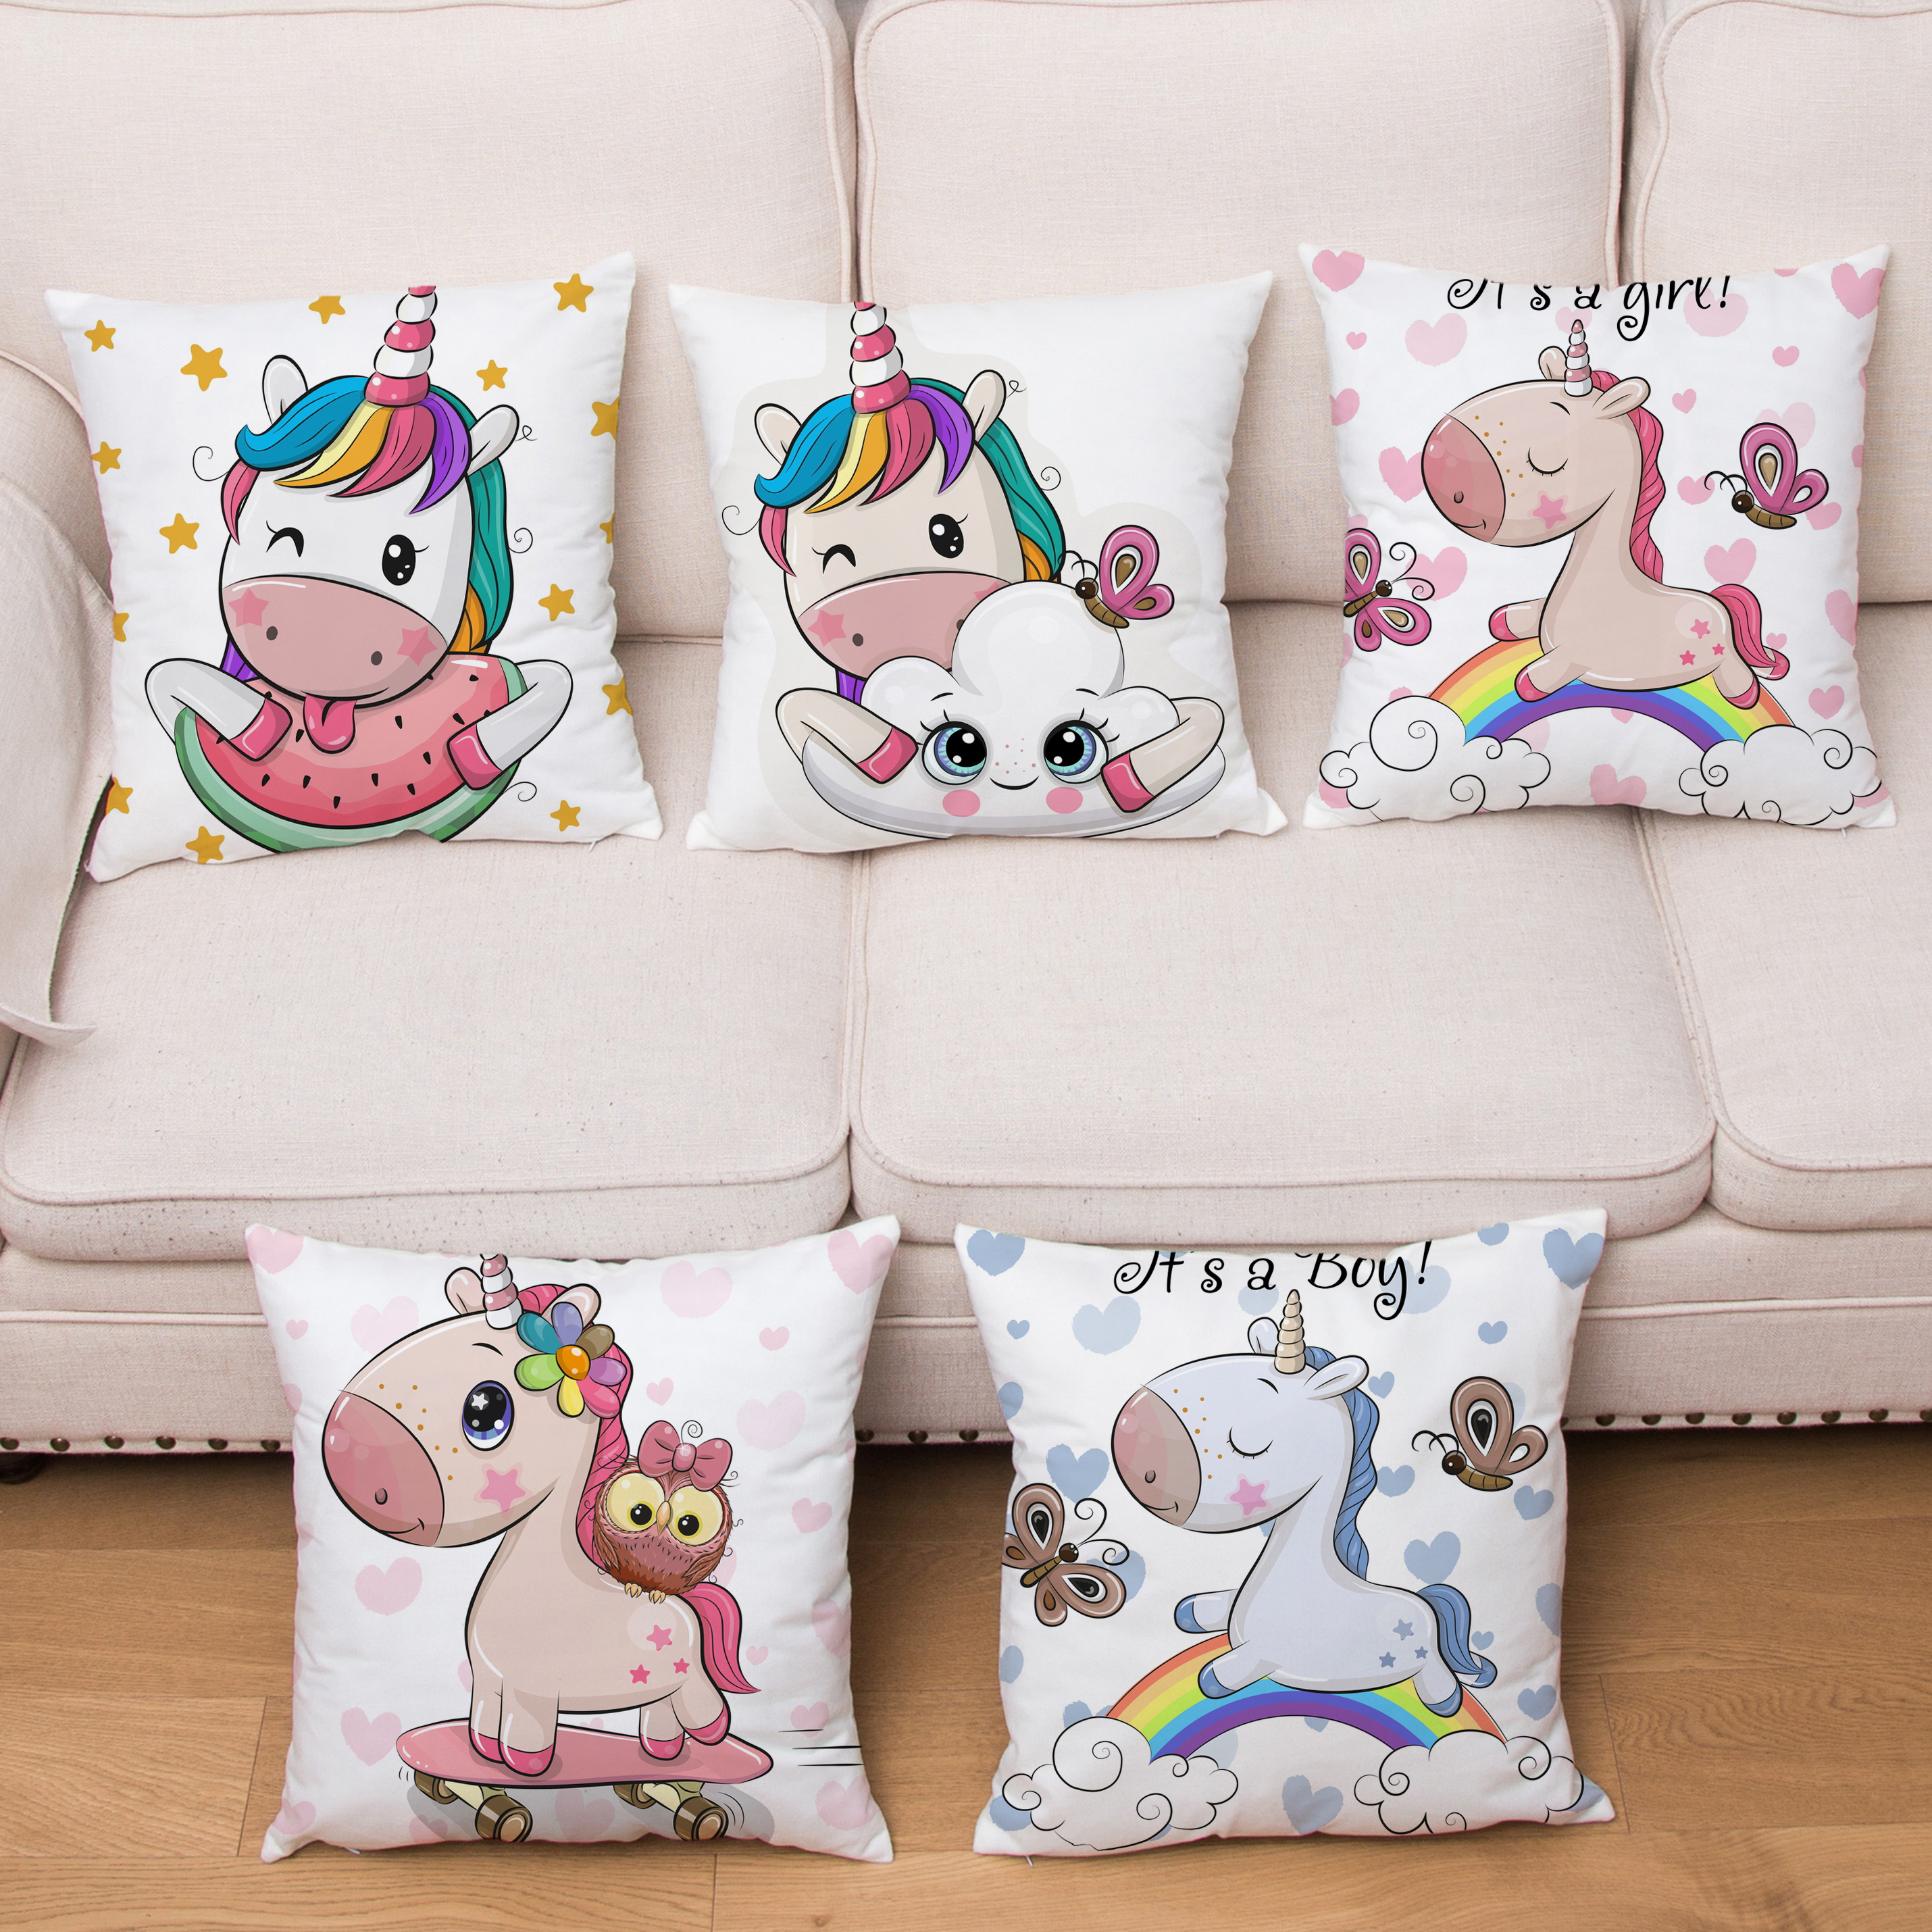 HD Cartoon Animals Unicorn Cushion Cover 45*45 Super Soft Short Plush Pillows Covers Throw Pillows Cases Home Decor Pillowcase